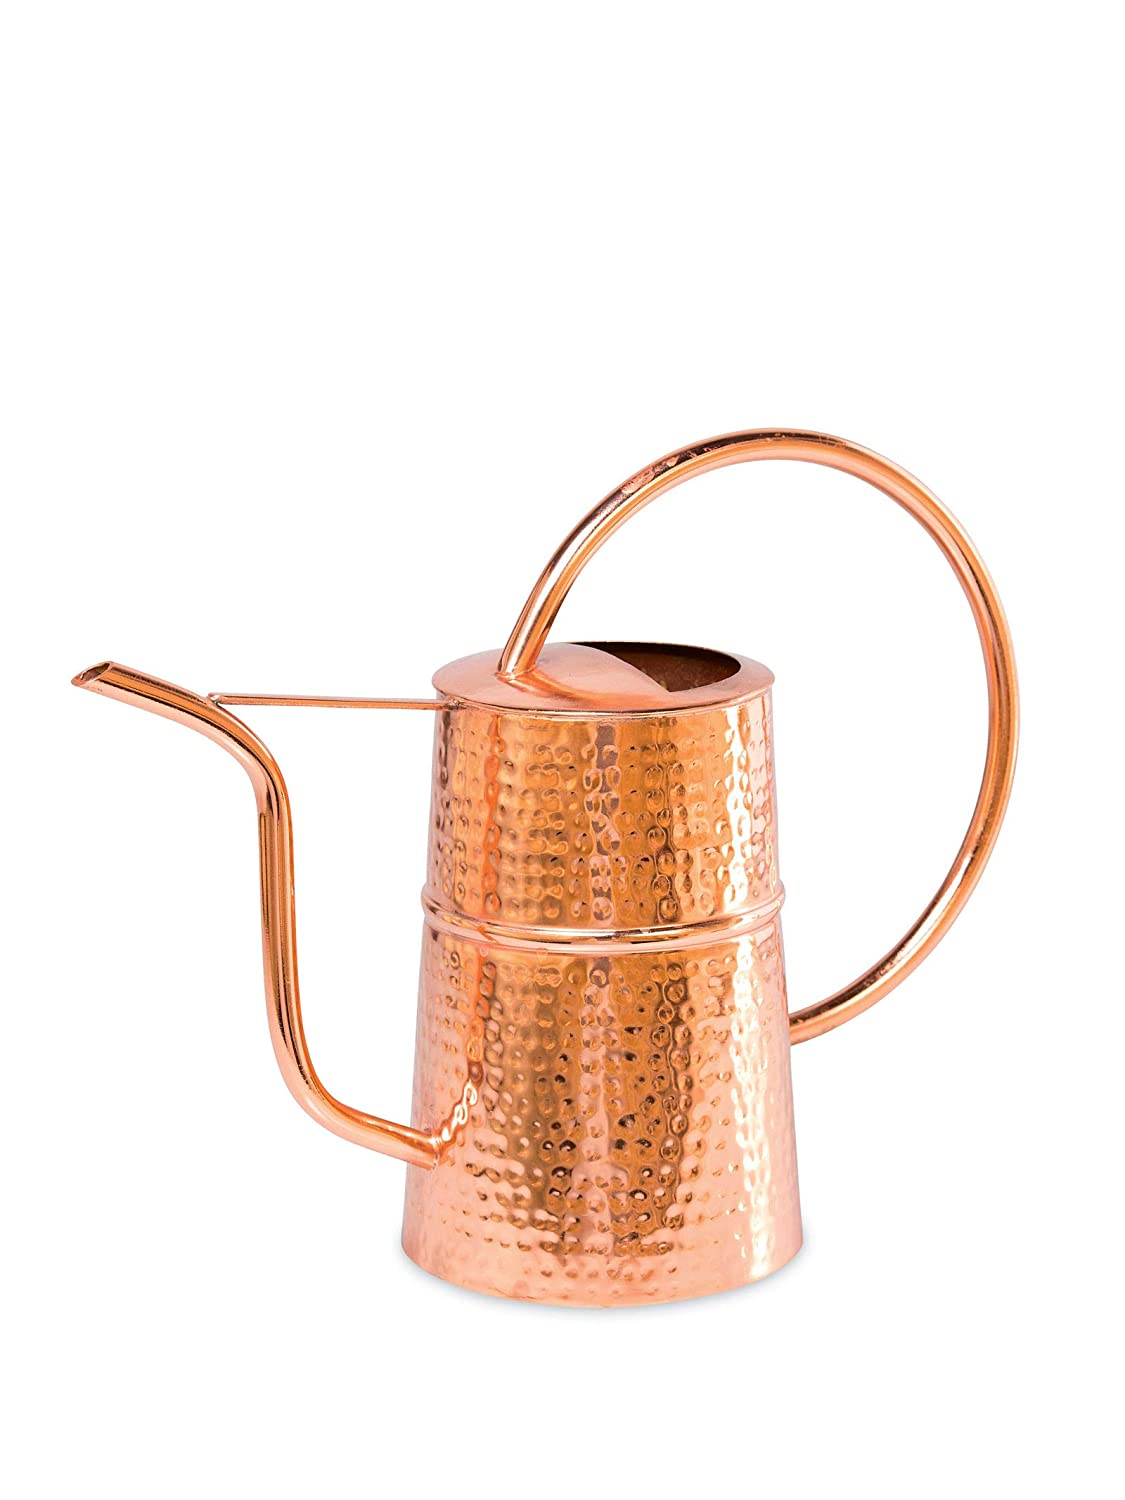 and Herbs Gardeners Supply Company Copper Indoor Watering Can for Houseplants Seeds Succulents